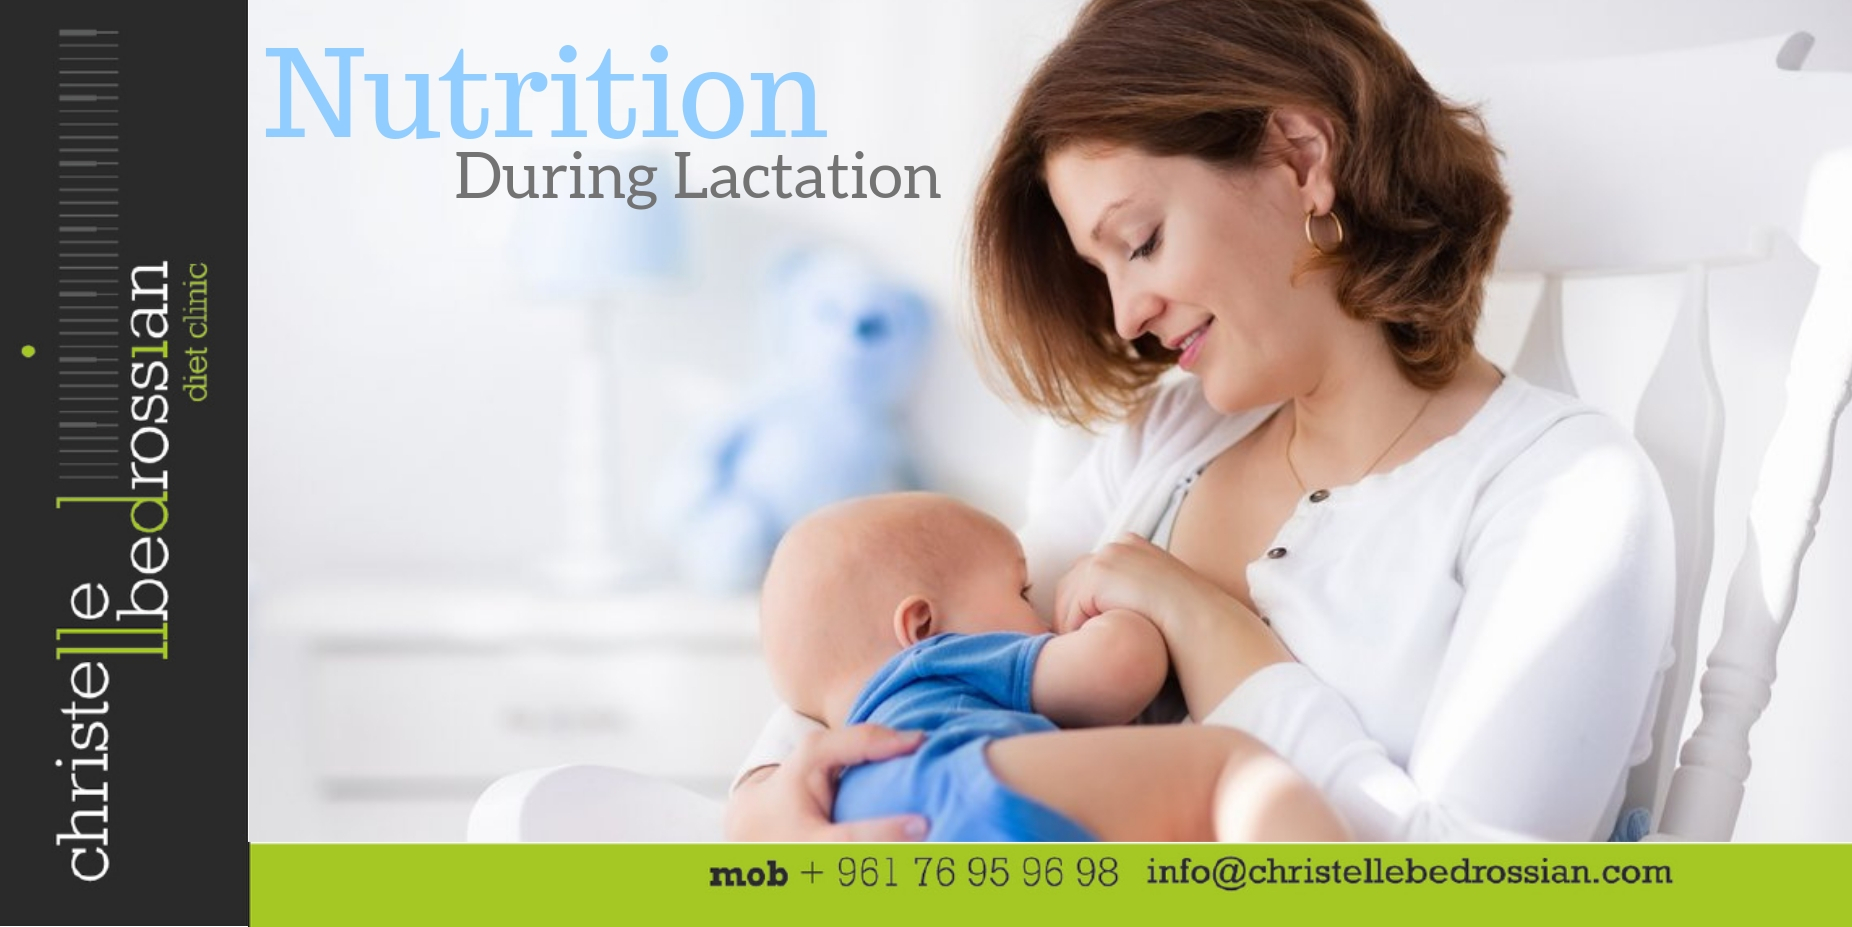 best dietitian lebanon, lebanon, health, healthy tips, lactation, food, breastfeeding, women